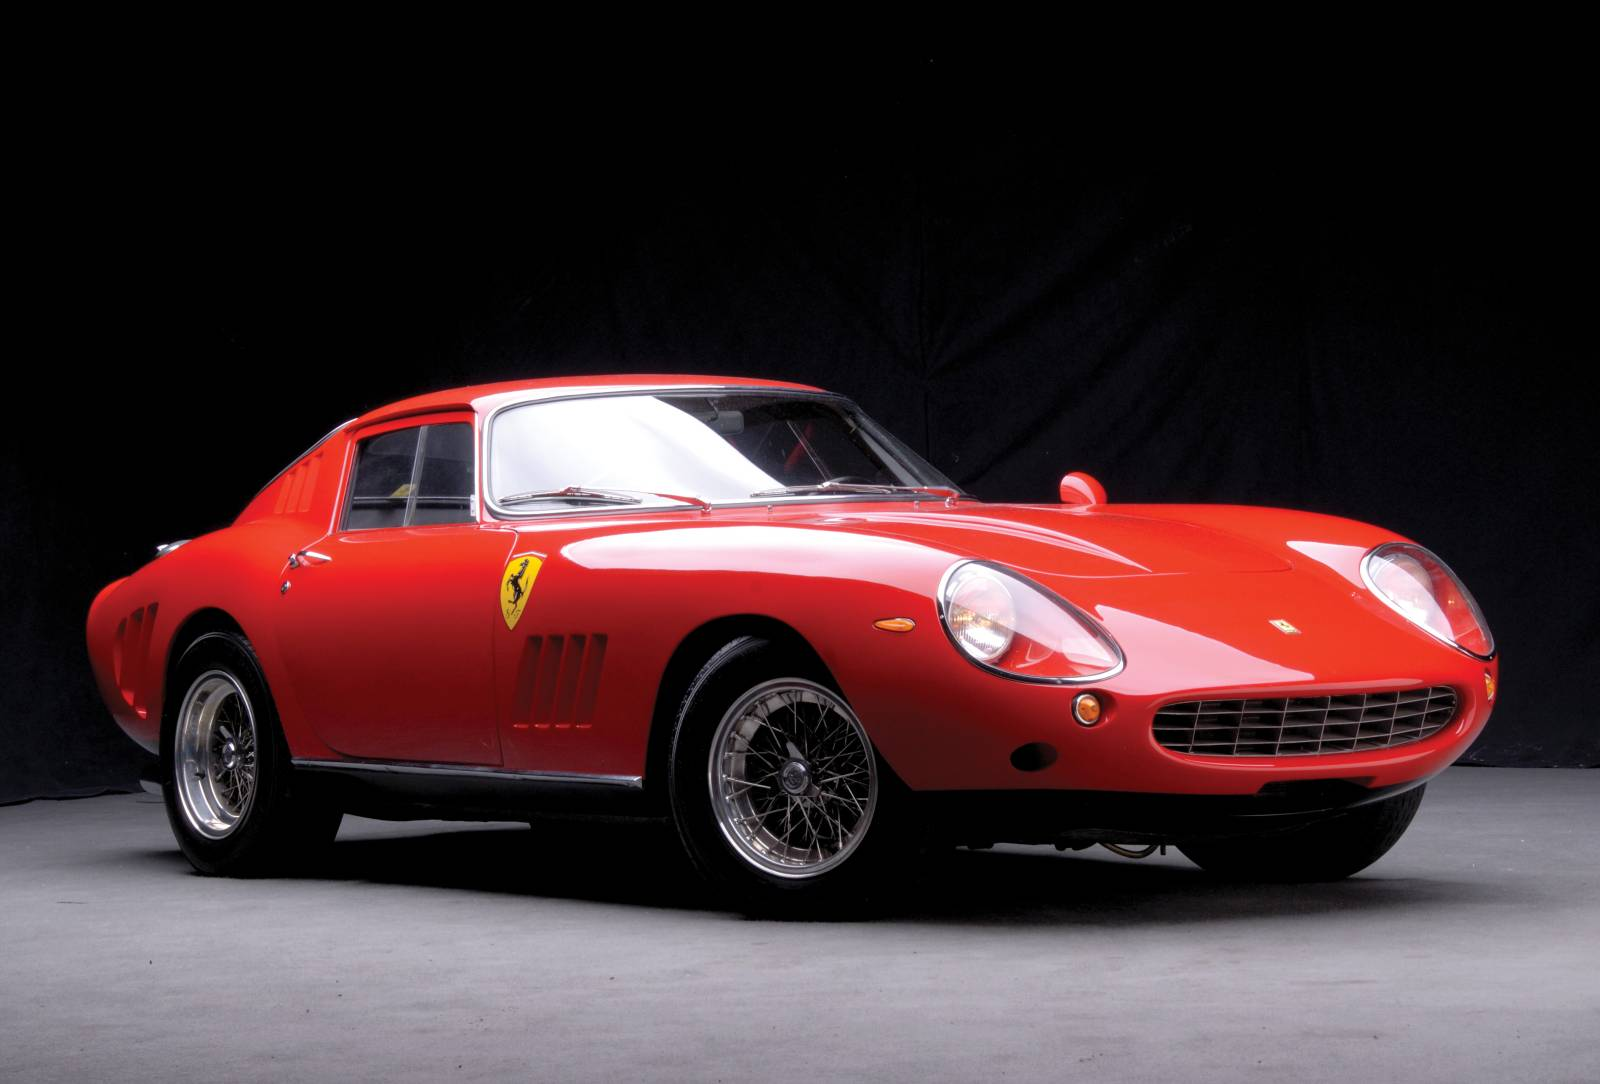 1966 ferrari 275 gtb classic automobiles. Black Bedroom Furniture Sets. Home Design Ideas